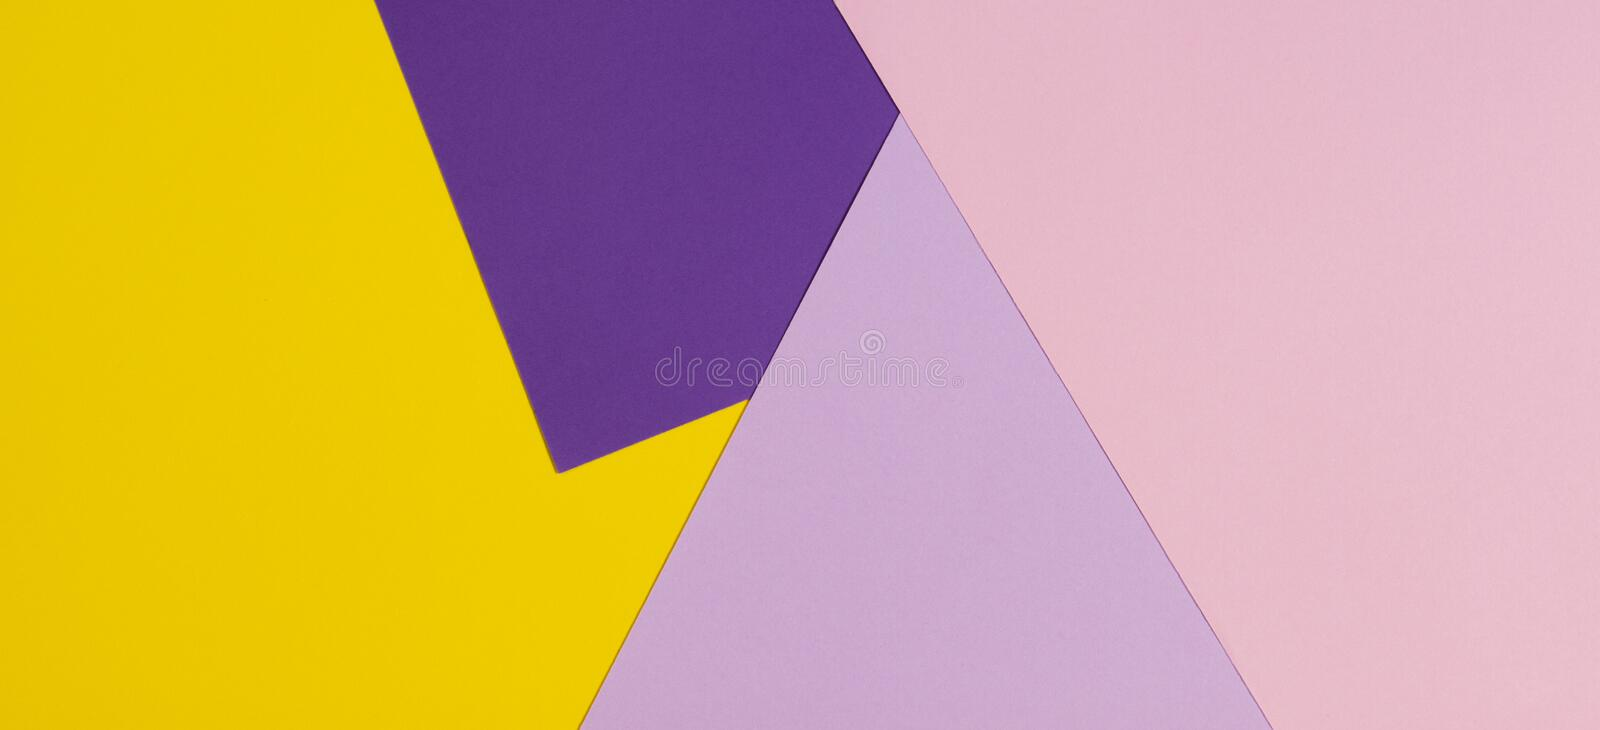 Color papers geometry flat composition background with violet, purple, pink, yellow tones. stock photo